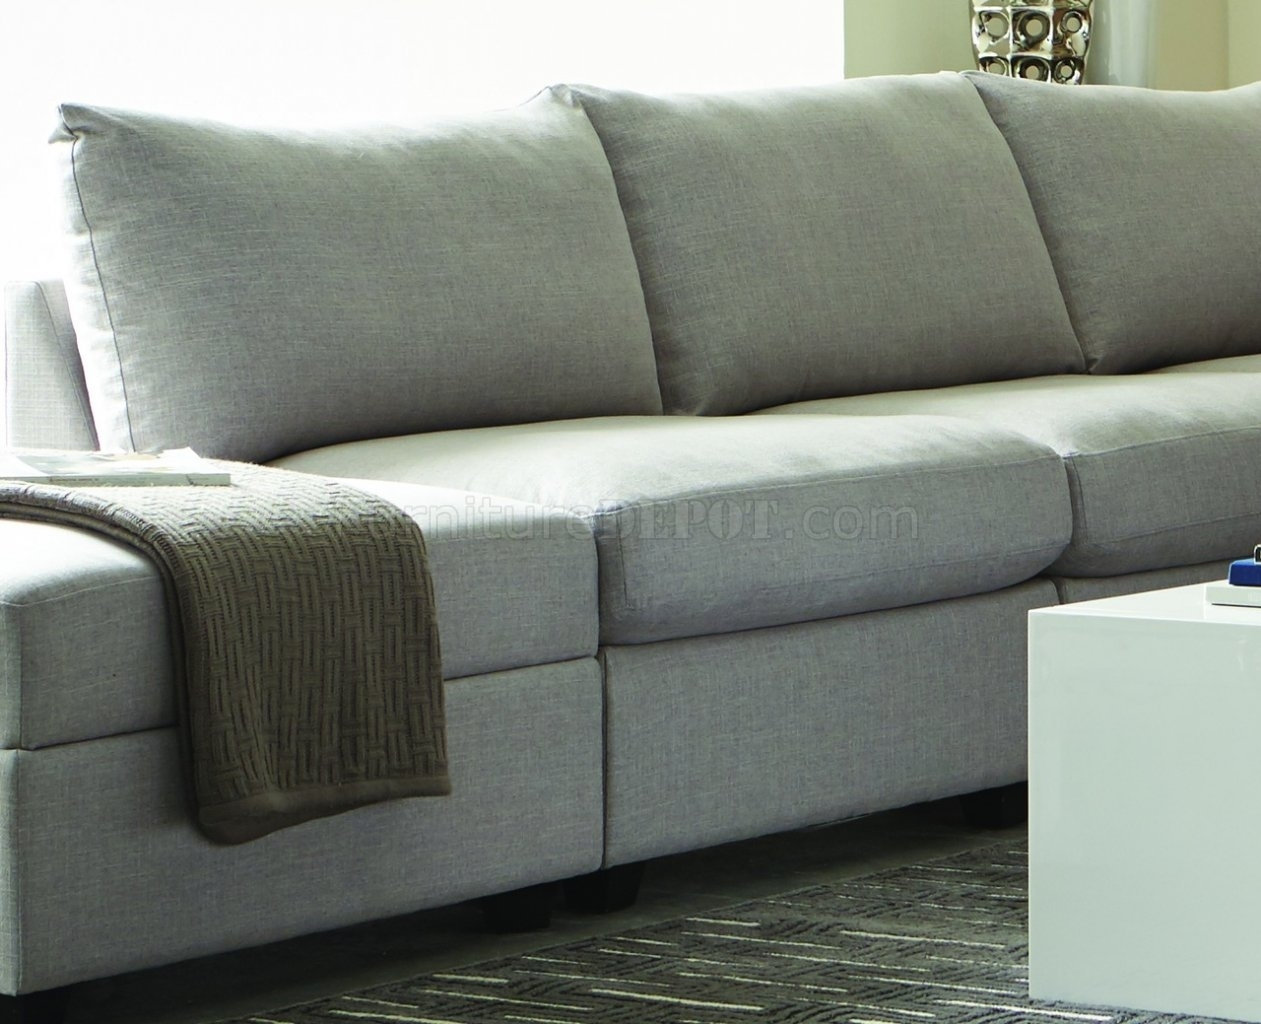 Charlotte 551221 - Scott Living - Coaster - Grey Sectional with regard to Charlotte Sectional Sofas (Image 7 of 10)